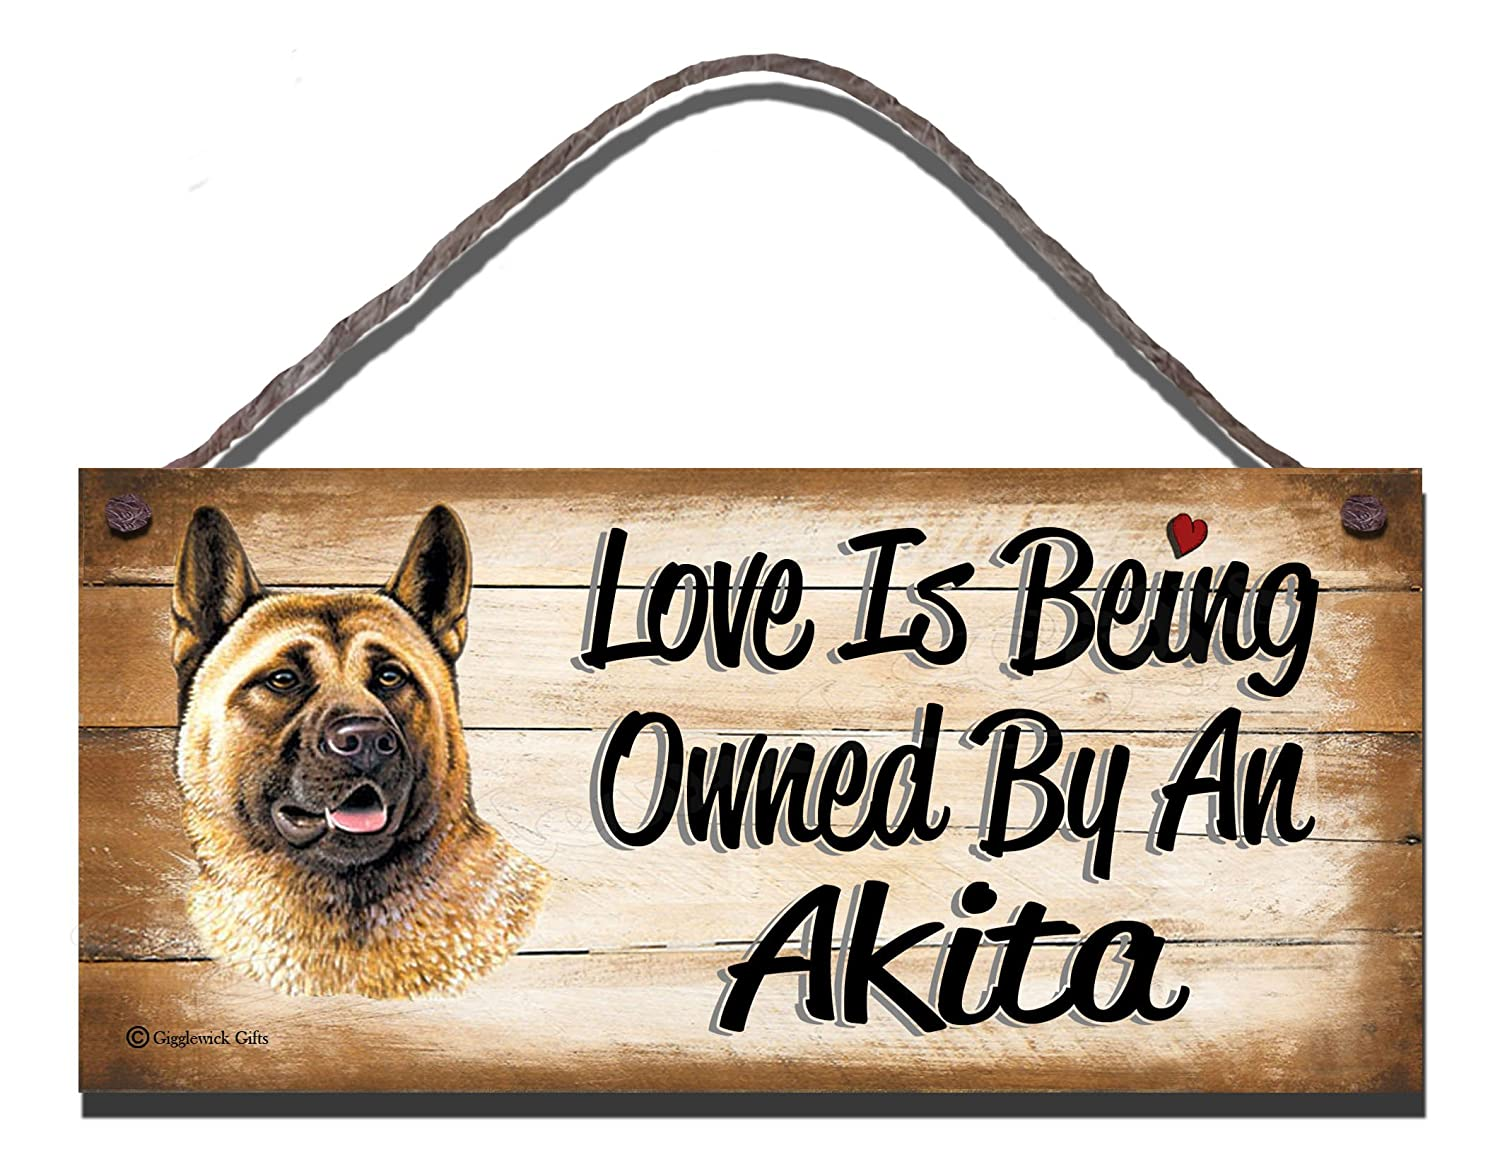 Amazon.com: Akita Wooden Funny Sign Wall Plaque Gift Present Love is Being Owned By An Akita Dog: Home & Kitchen